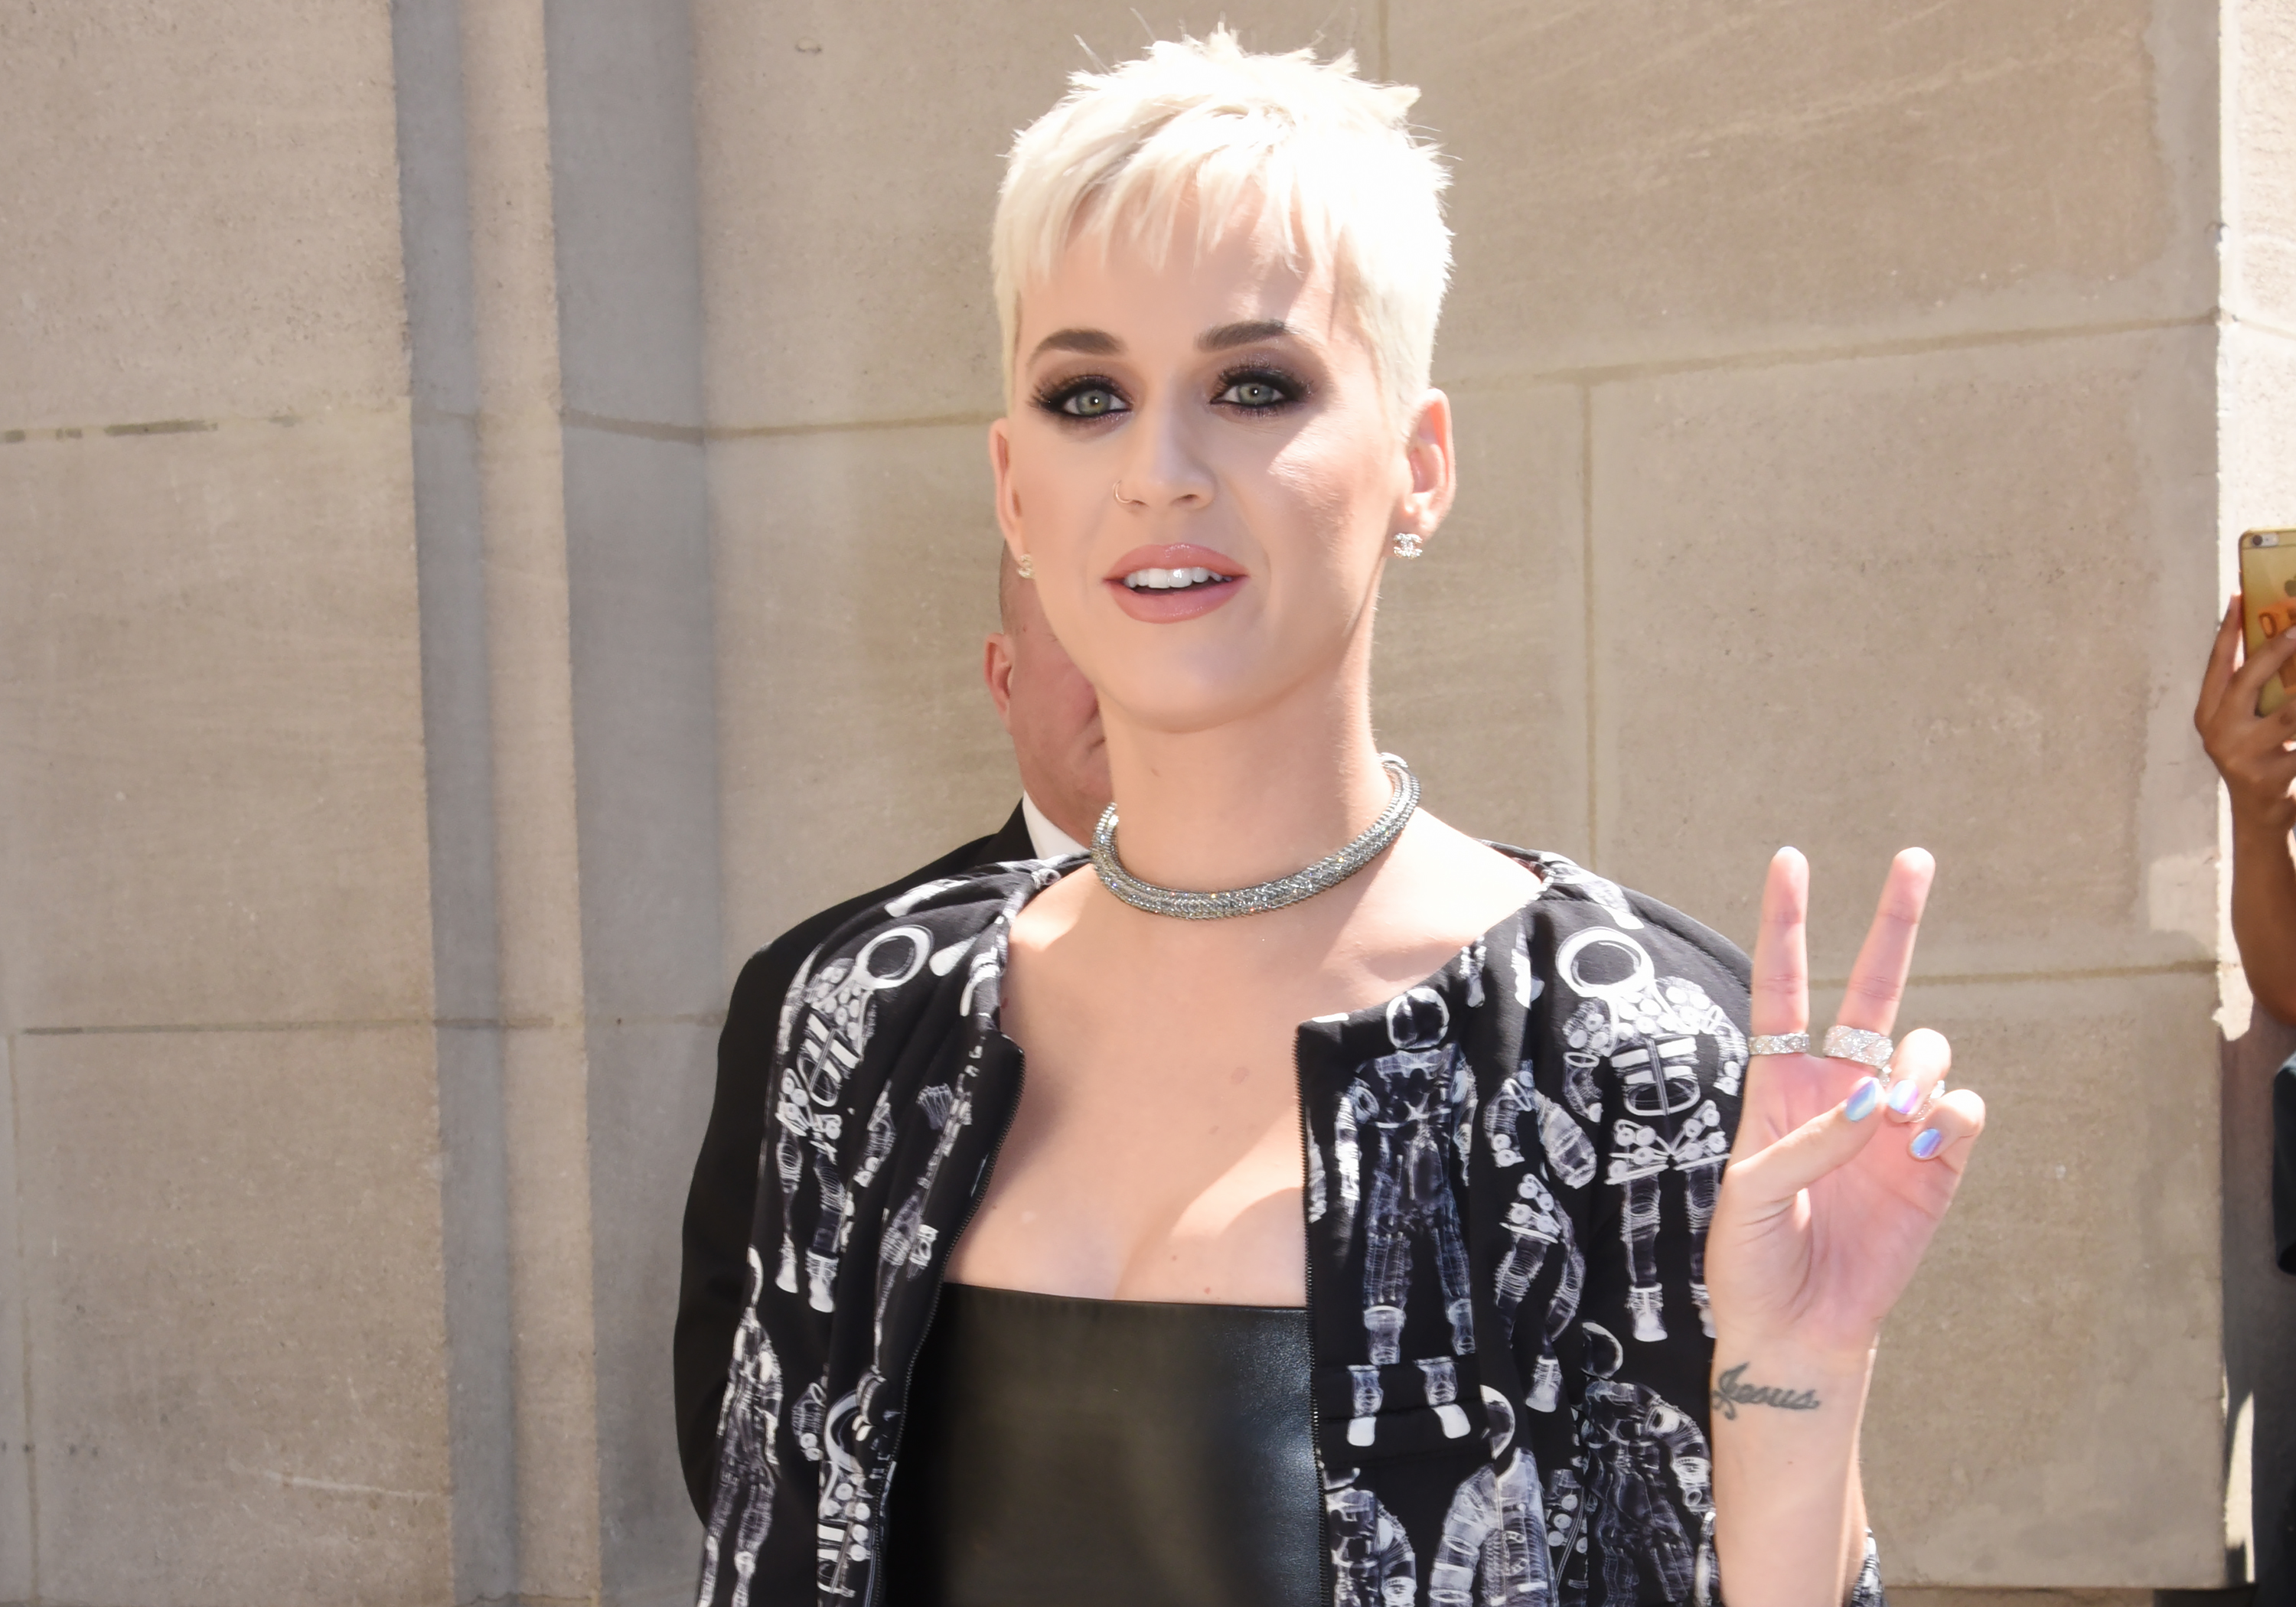 Katy Perry attends the Chanel Haute Couture Fall/Winter 2017-2018 show as part of Paris Fashion Week on July 4, 2017 in Paris, France.